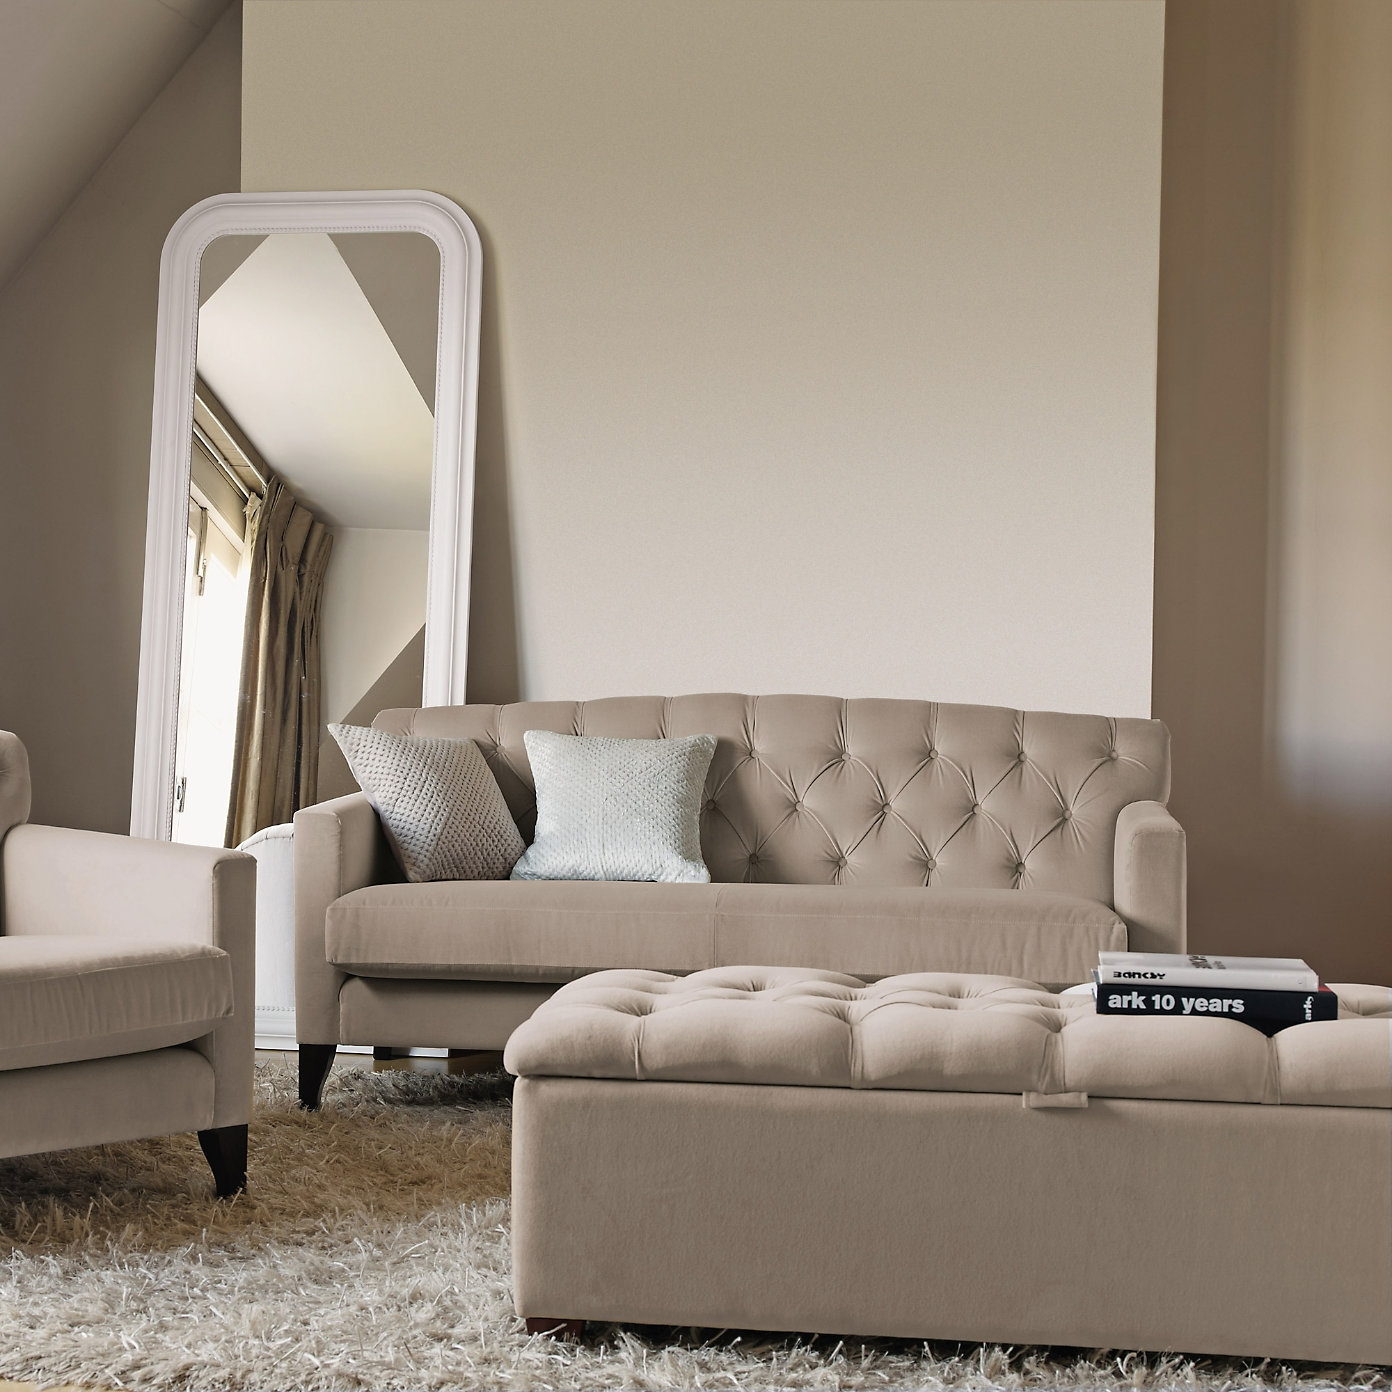 Eaton Bedroom Sofa From The White Company Furniture And Linen Within Bedroom Sofas And Chairs (Image 8 of 15)